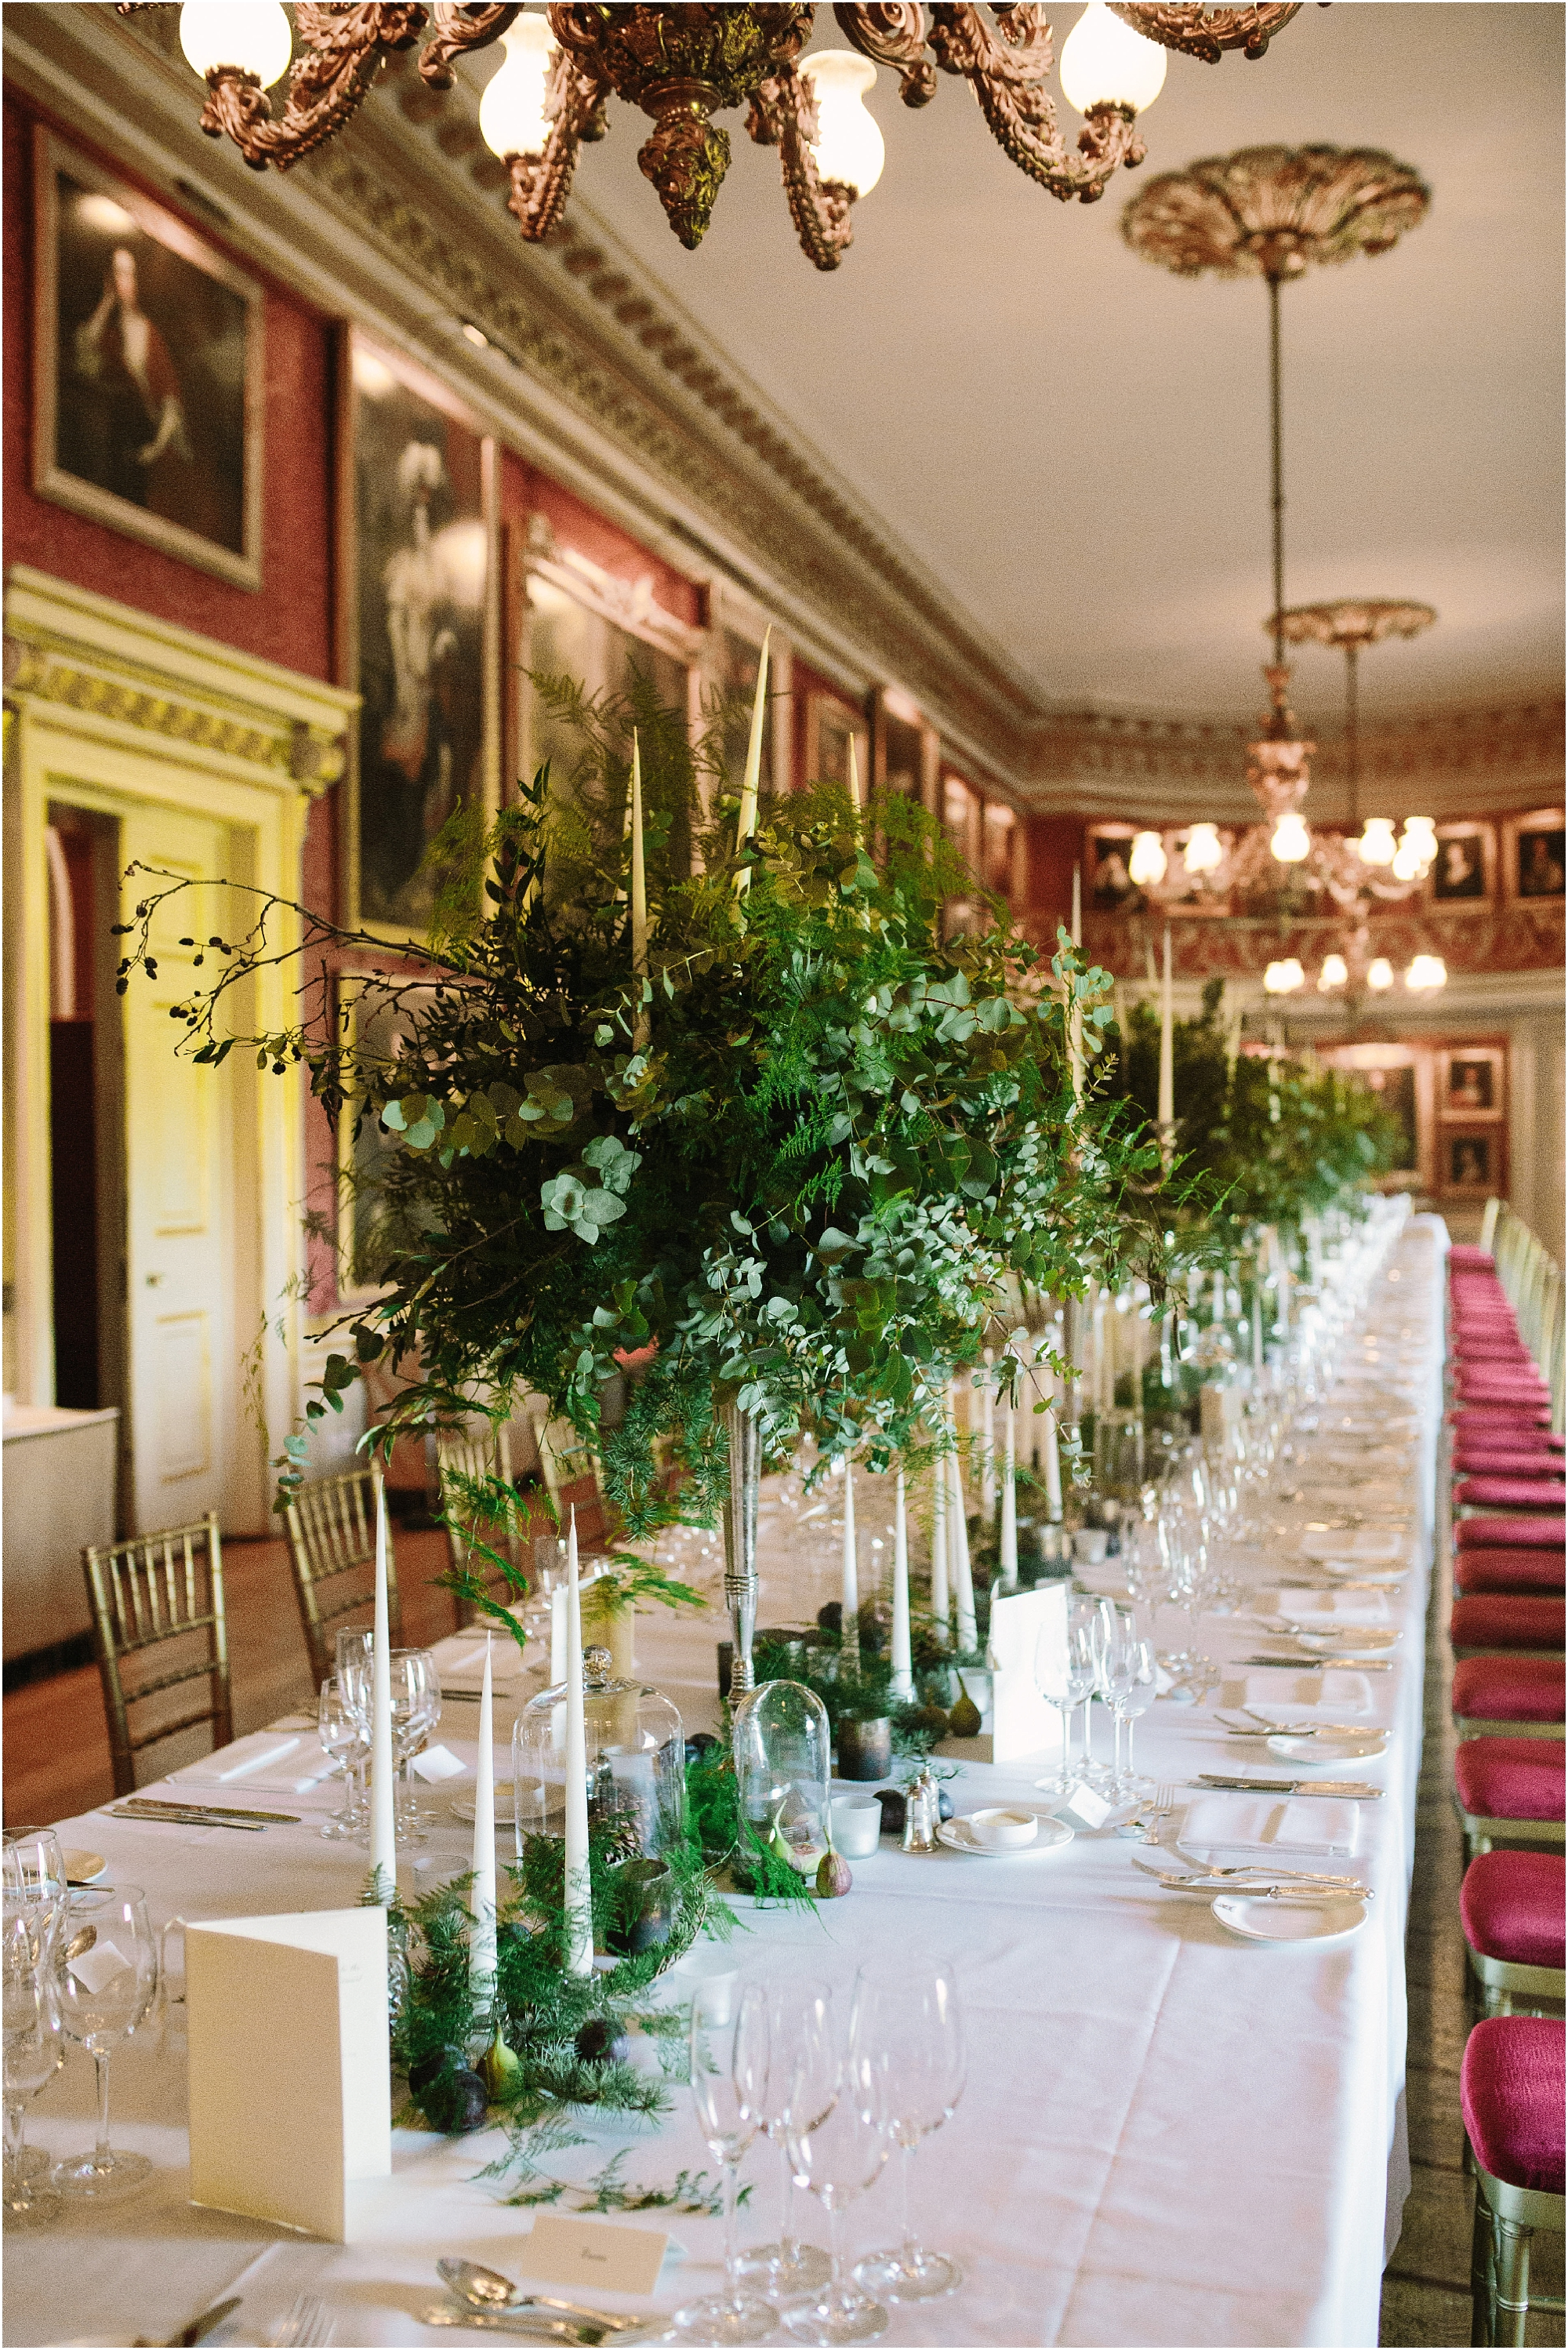 Wedding breakfast at Goodwood House